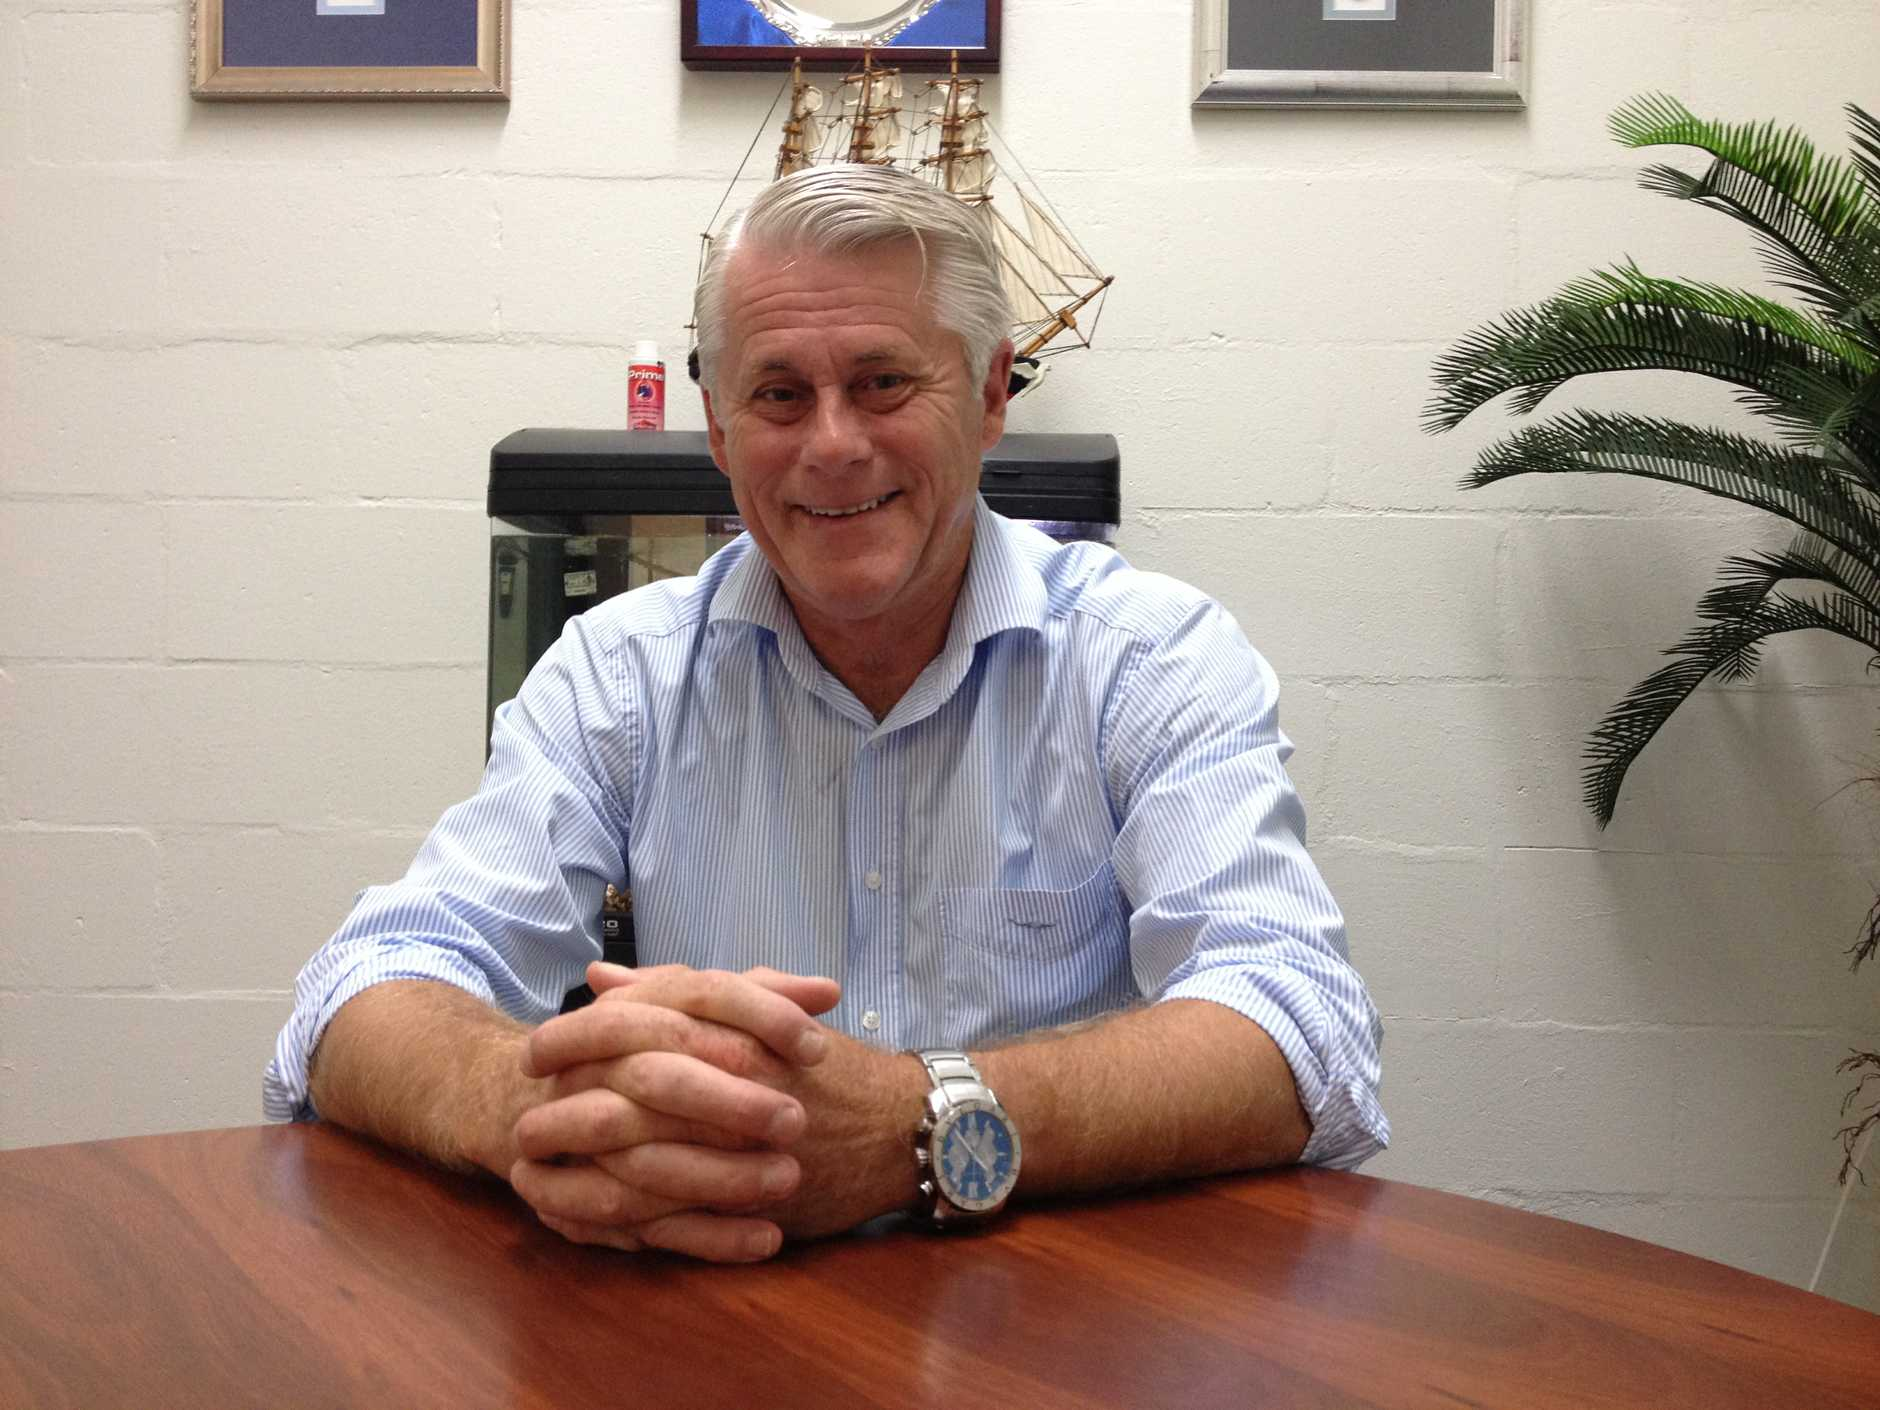 NEW TERM: Tweed MP Geoff Provest in his electorate office in Tweed says he has a new plan for Tweed.